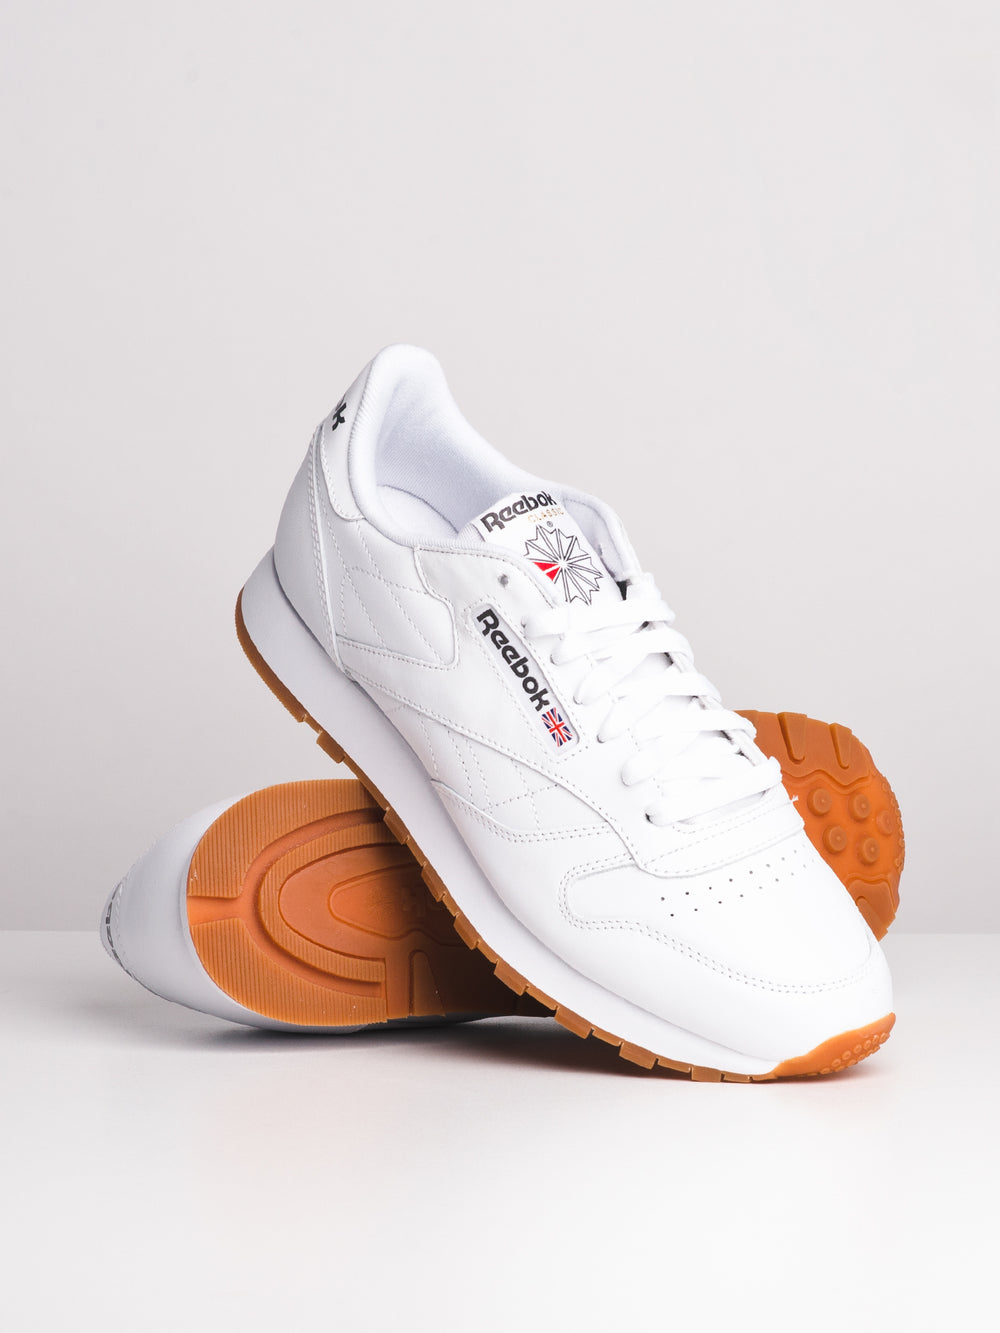 6e1866b3b39 MENS CLASSIC LEATHER - WHITE GUM. REEBOK